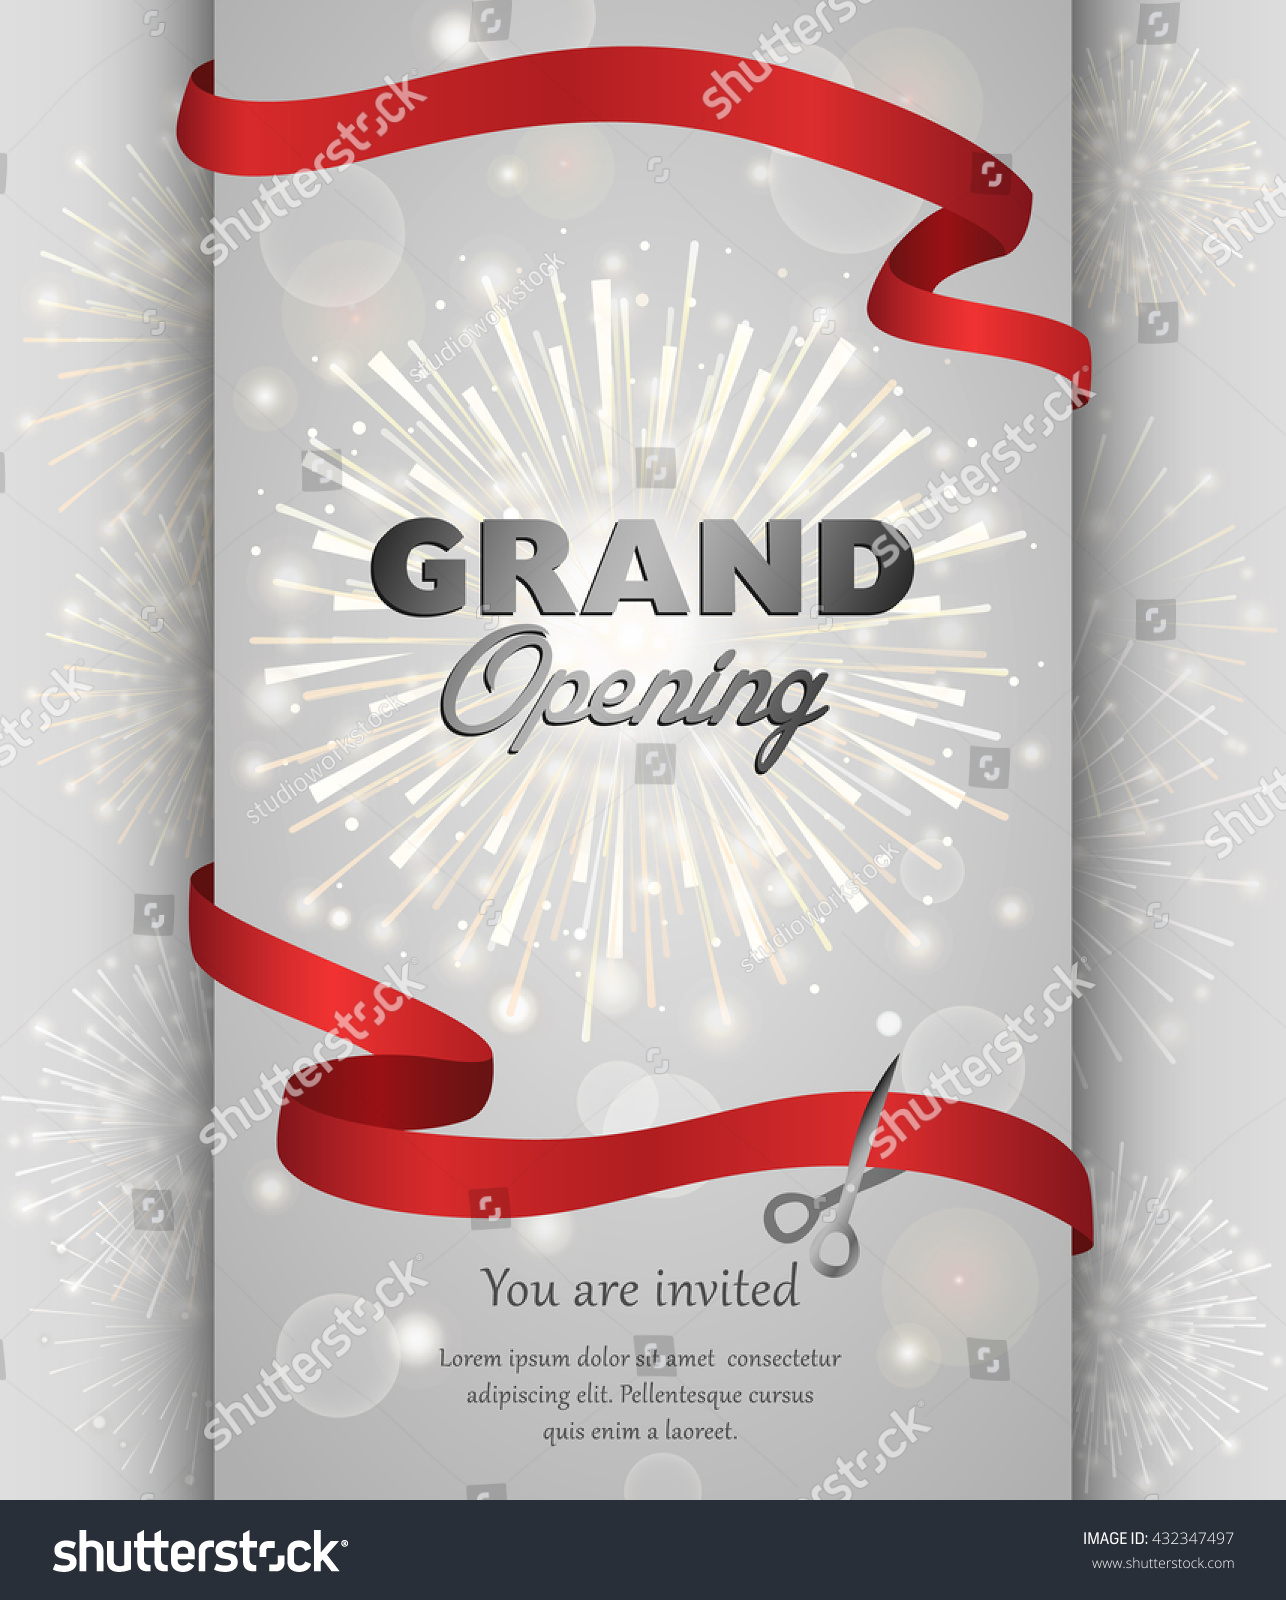 Grand Opening Celebration Banner Design Vector Stock Vector HD ...